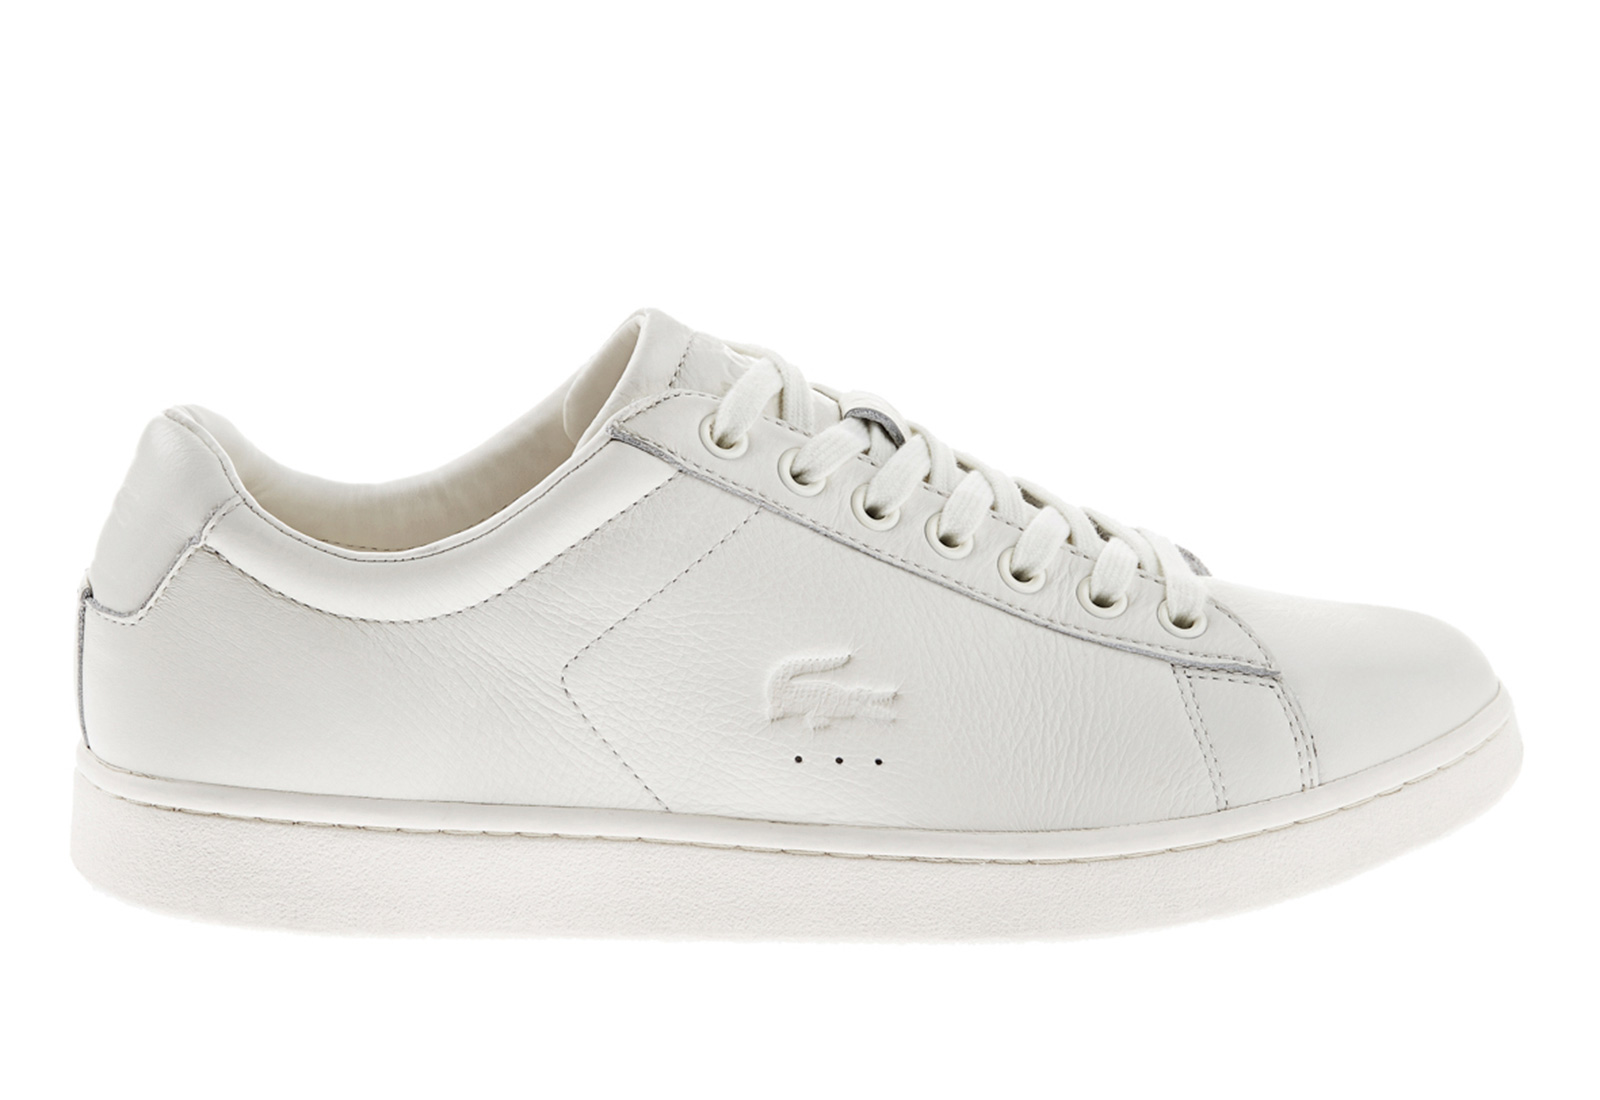 lacoste shoes carnaby menopause and weight